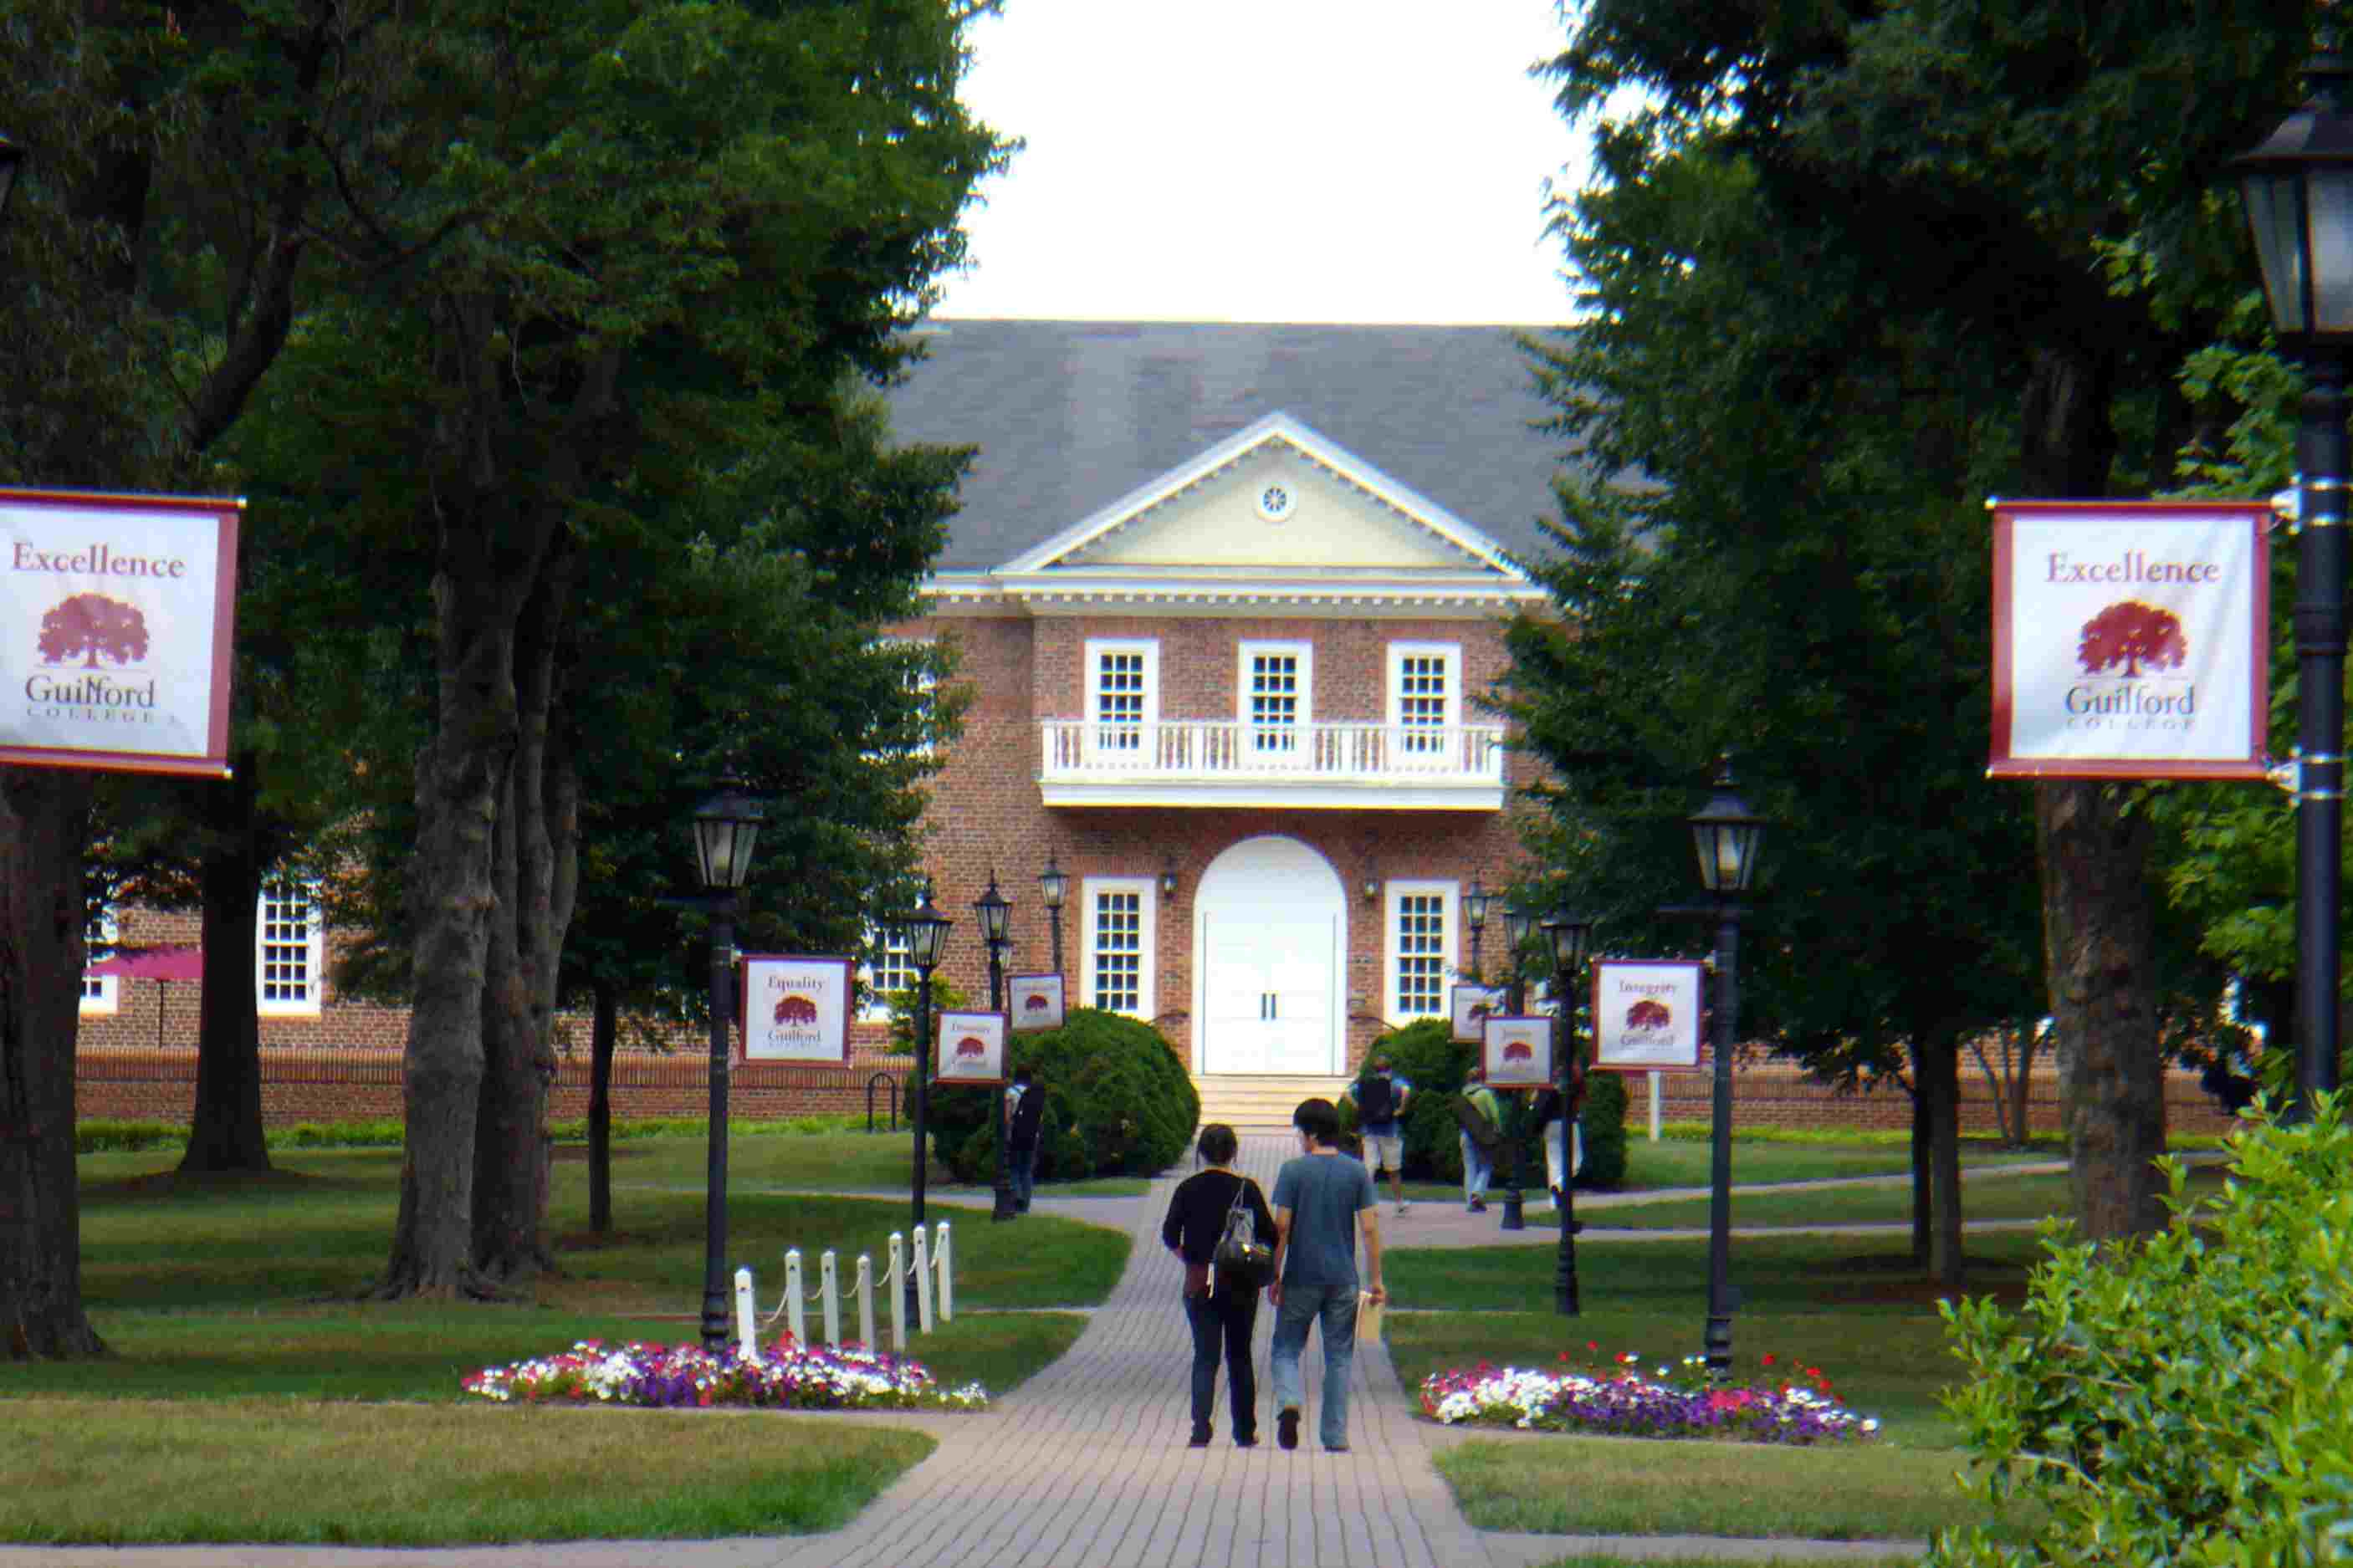 Two students on the brick walkway through Guilford College in the southeastern United States